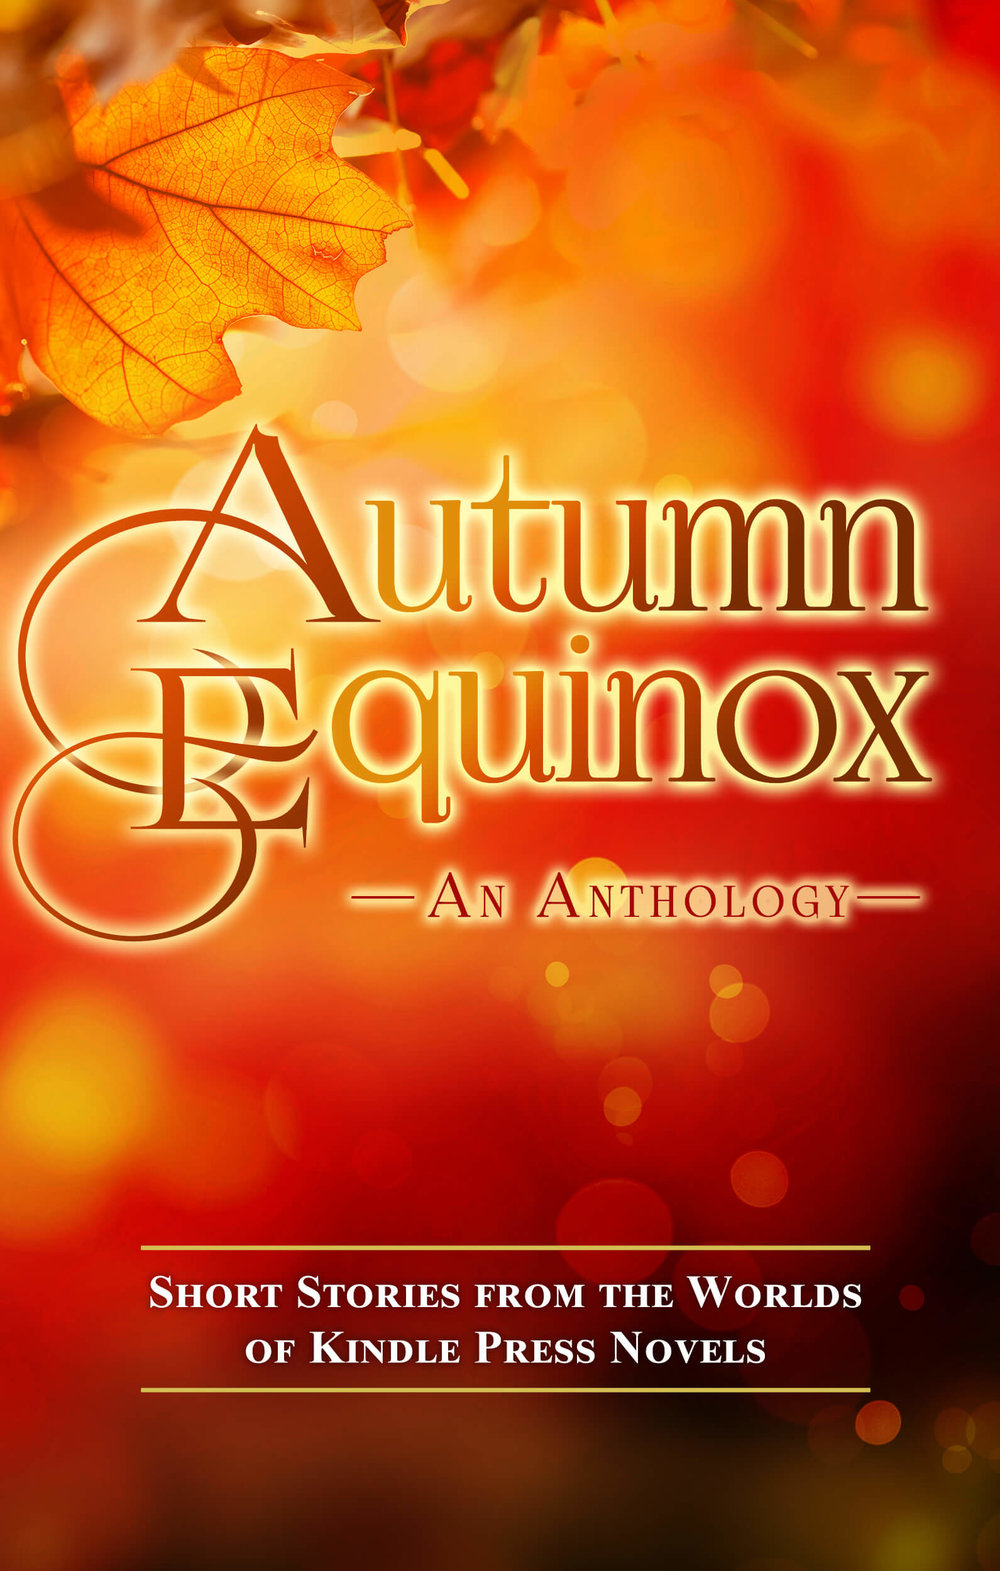 Autumn Equinox - Fall is upon us once more as the seasons come to a close. Want a great end-of-year read about preparing for the winter ahead? Then look no further than our collection of autumnal stories!This volume contains a dozen fall-themed stories by Kindle Press Authors writing in the worlds of their longer works. There is romance, action and adventure, intrigue, and even a few scary stories to prepare you for the winter ahead.So grab a copy and come along! Who knows, you might just find your next favorite author!